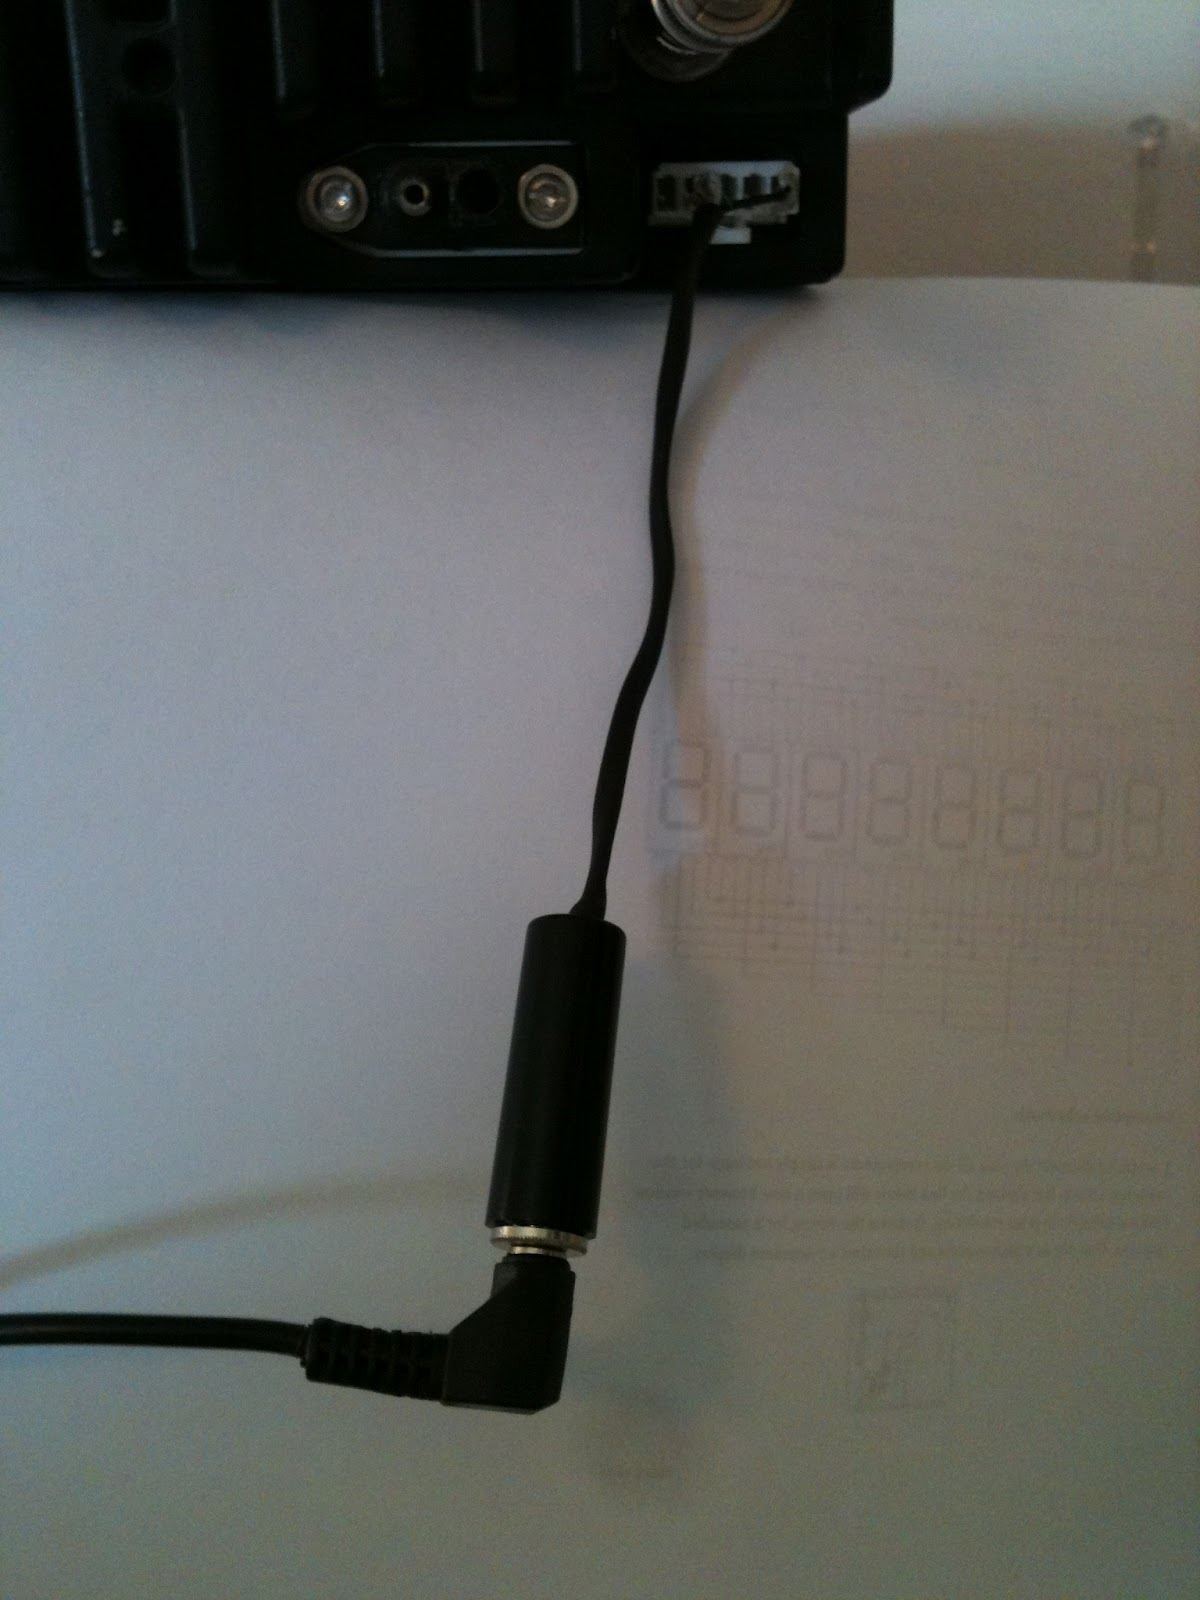 hight resolution of wires from pin 1 ground and pin 4 external speaker